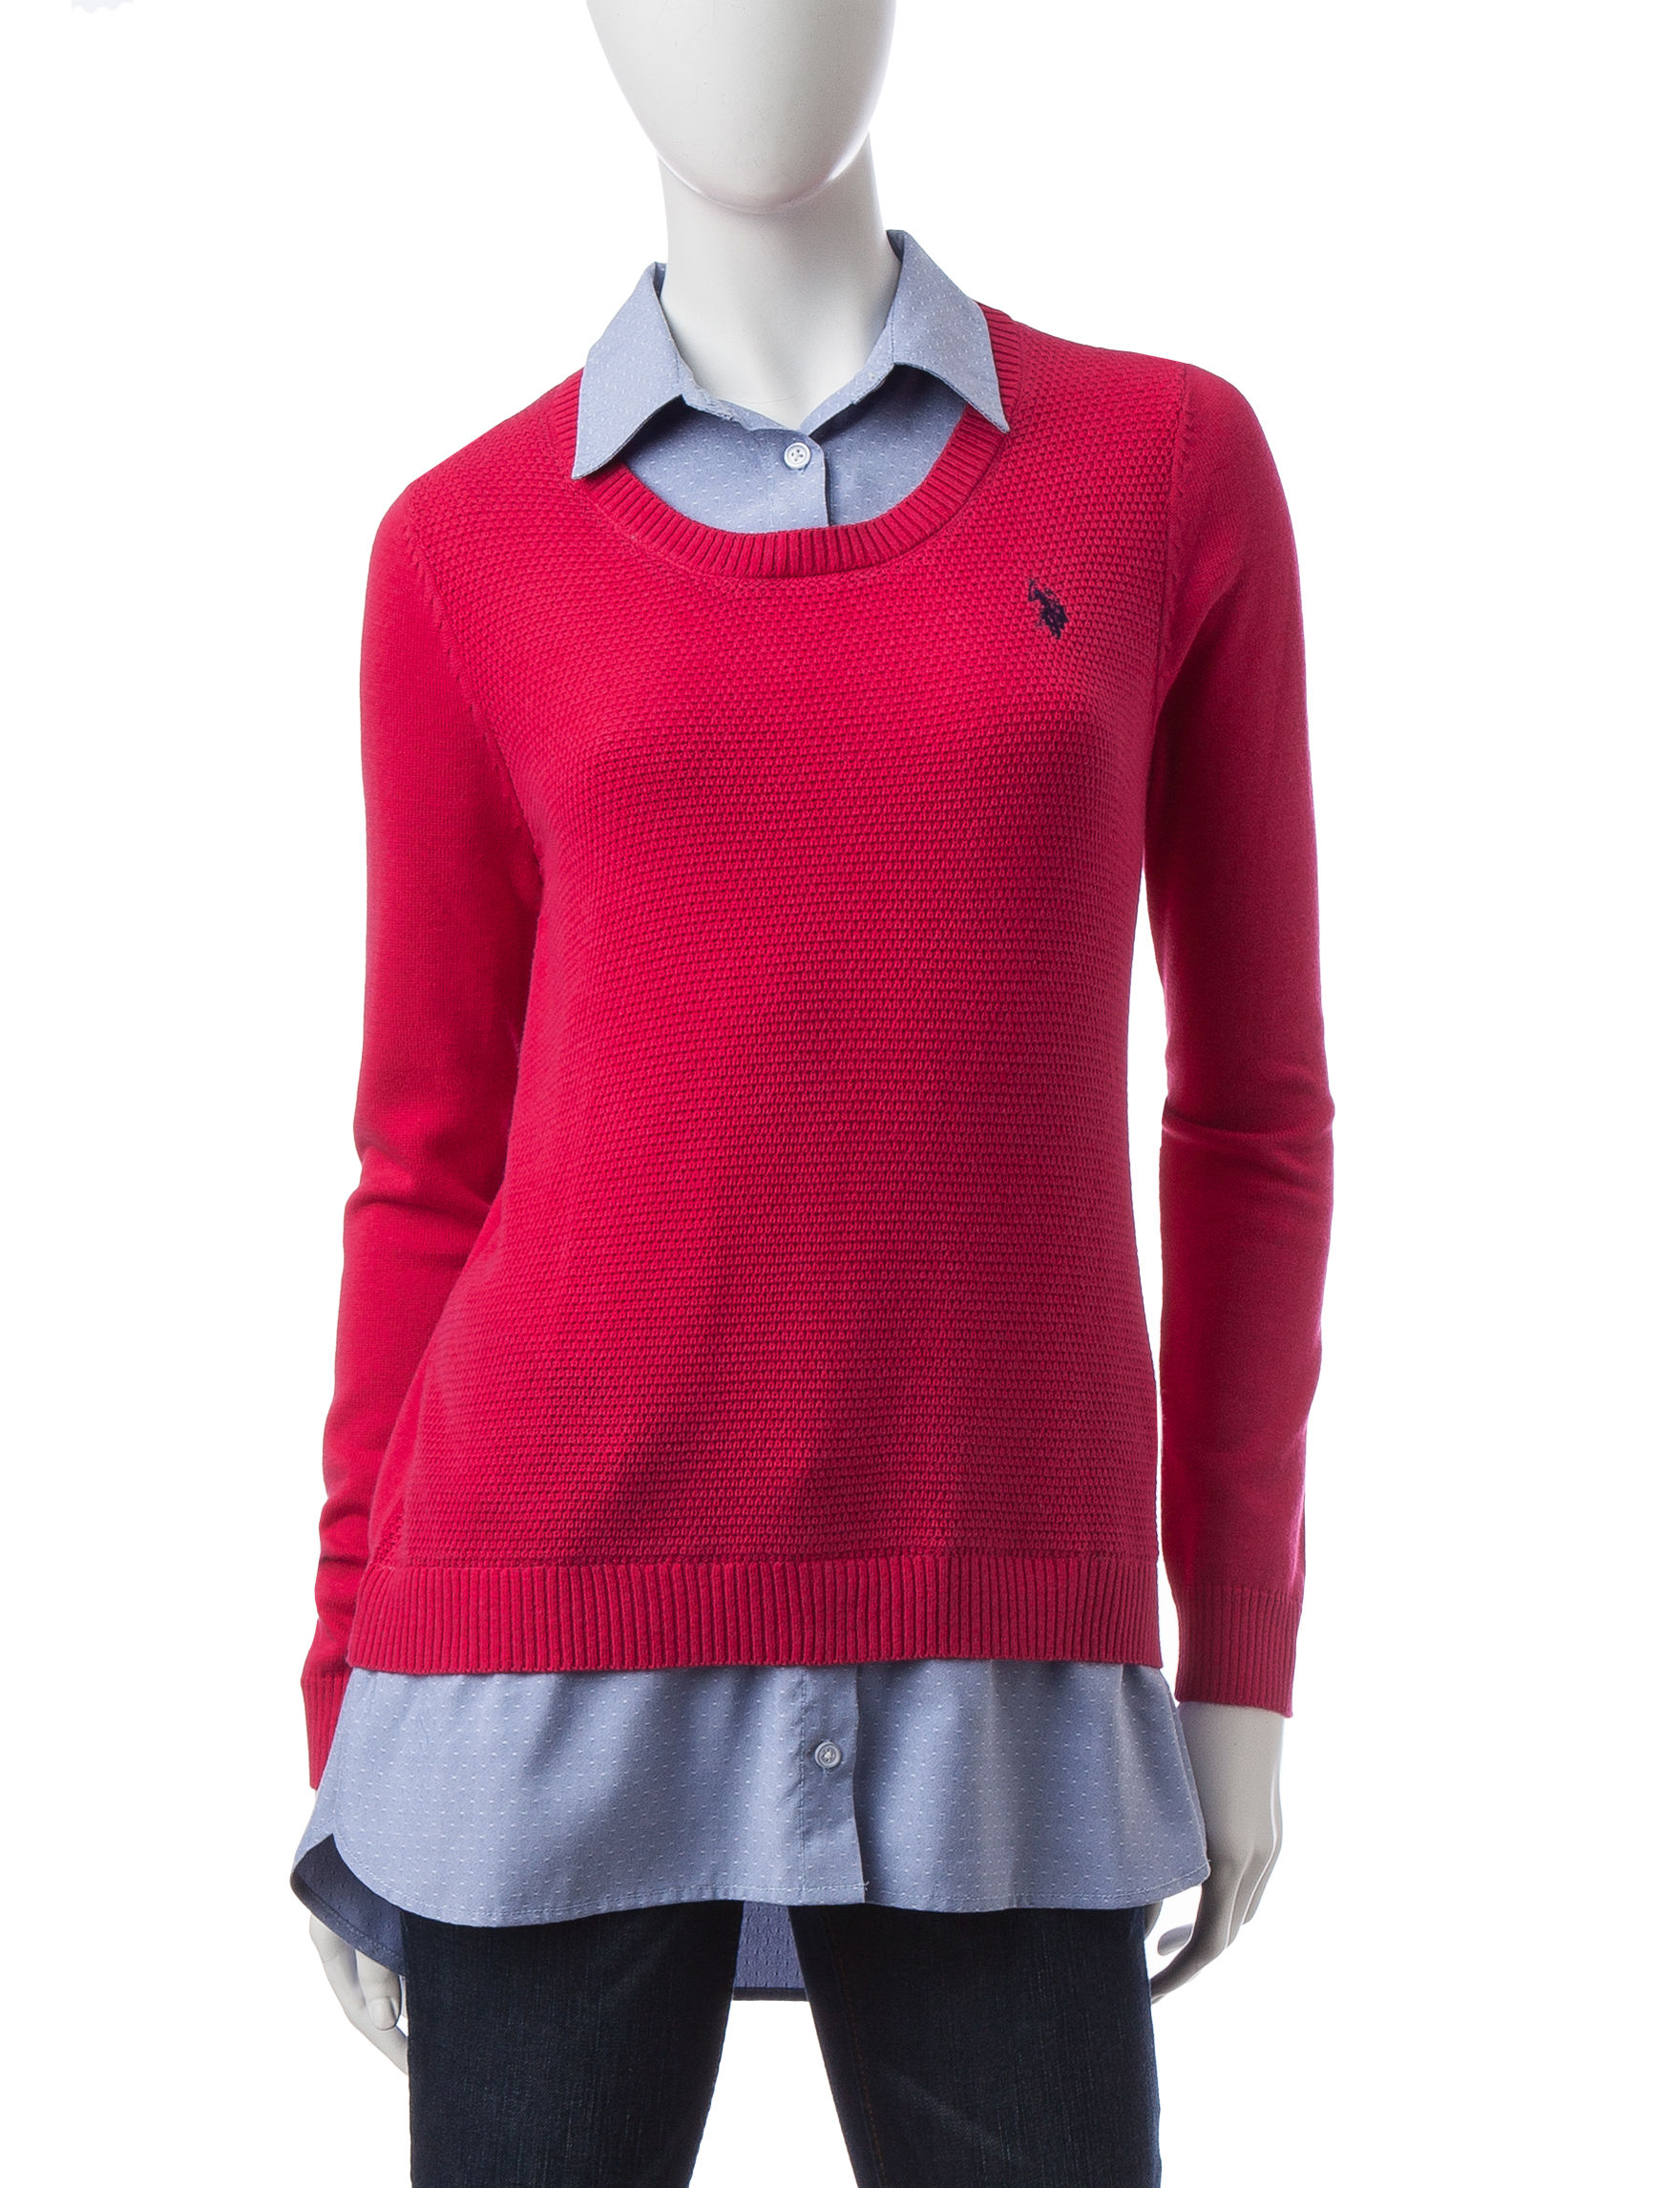 U.S. Polo Assn. Pink Pull-overs